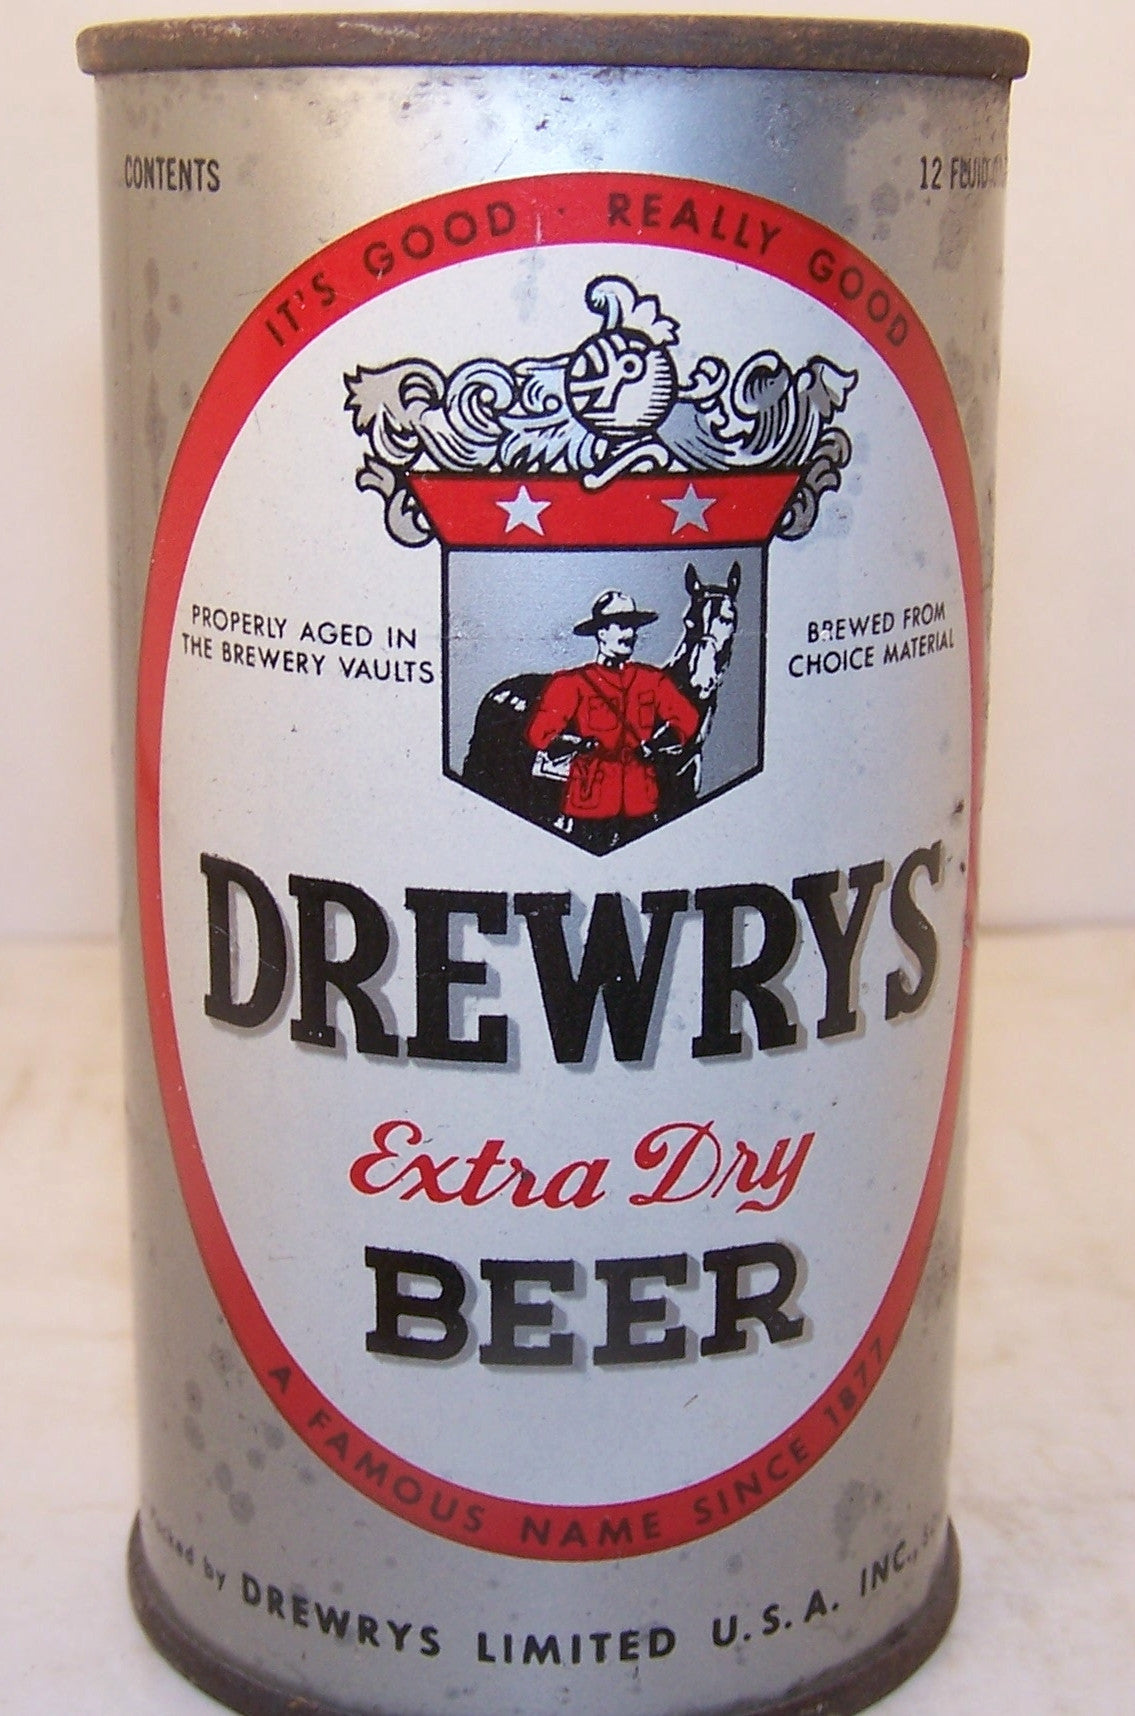 Drewrys extra dry beer, USBC 56-2, Grade 1- Sold 4/1/15